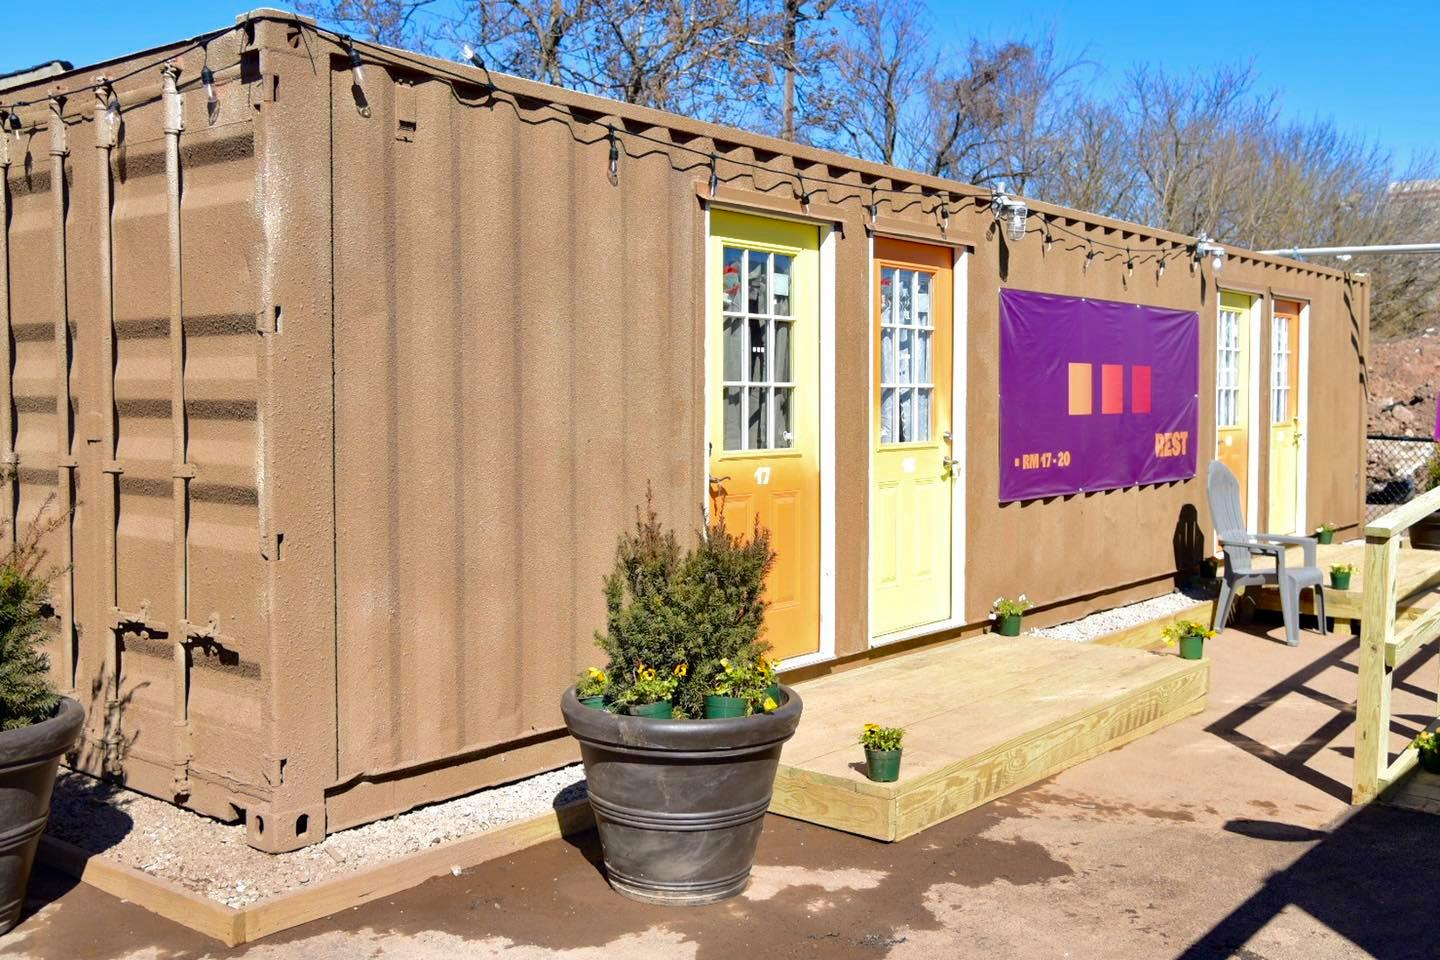 Container for the homeless in Newark